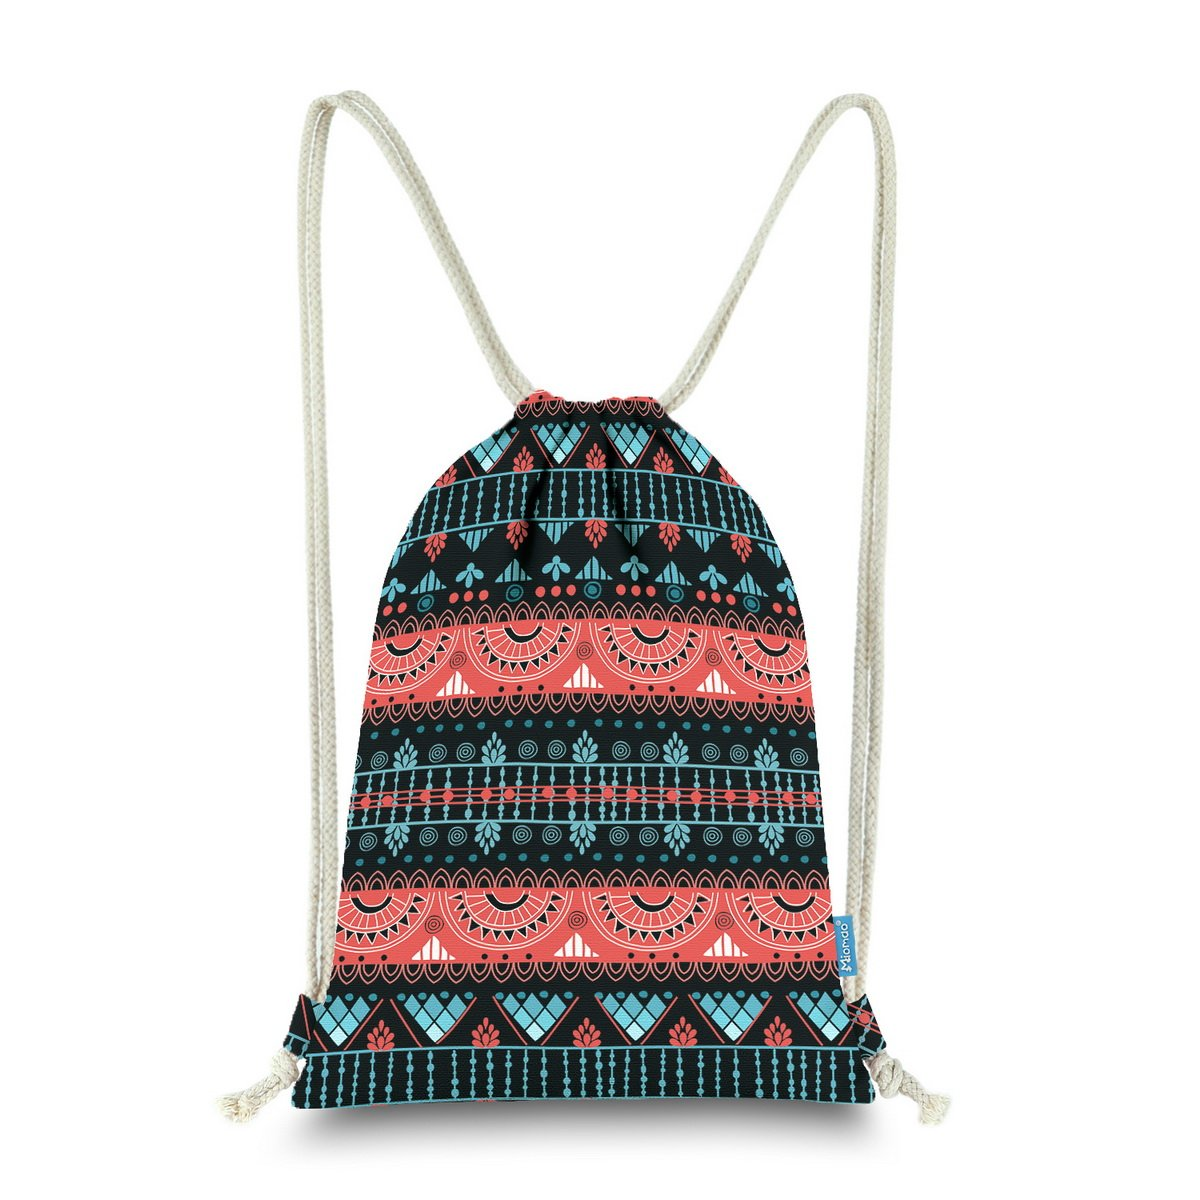 Miomao Gym Sackpack Drawstring Backpack Ethnic Bohemia Style String Bag Fleece Boho Sinch Sack Sport Cinch Sack Christams Gift Beach Bag 13 X 18 Inches Sunset Glow